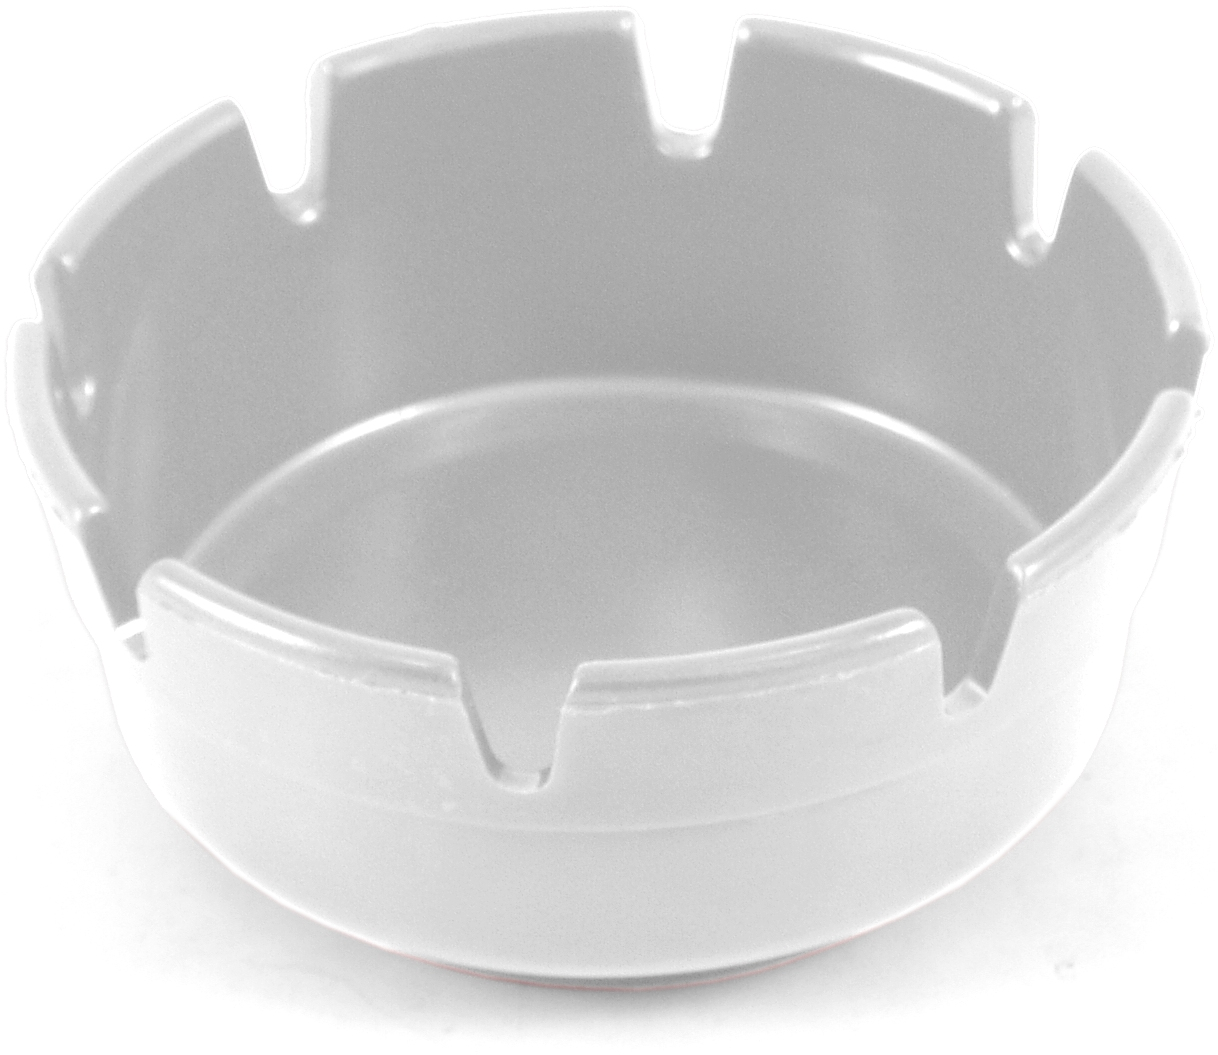 Ges White Plastic Cigarette Ashtray with 8 Notches, 4 Inch